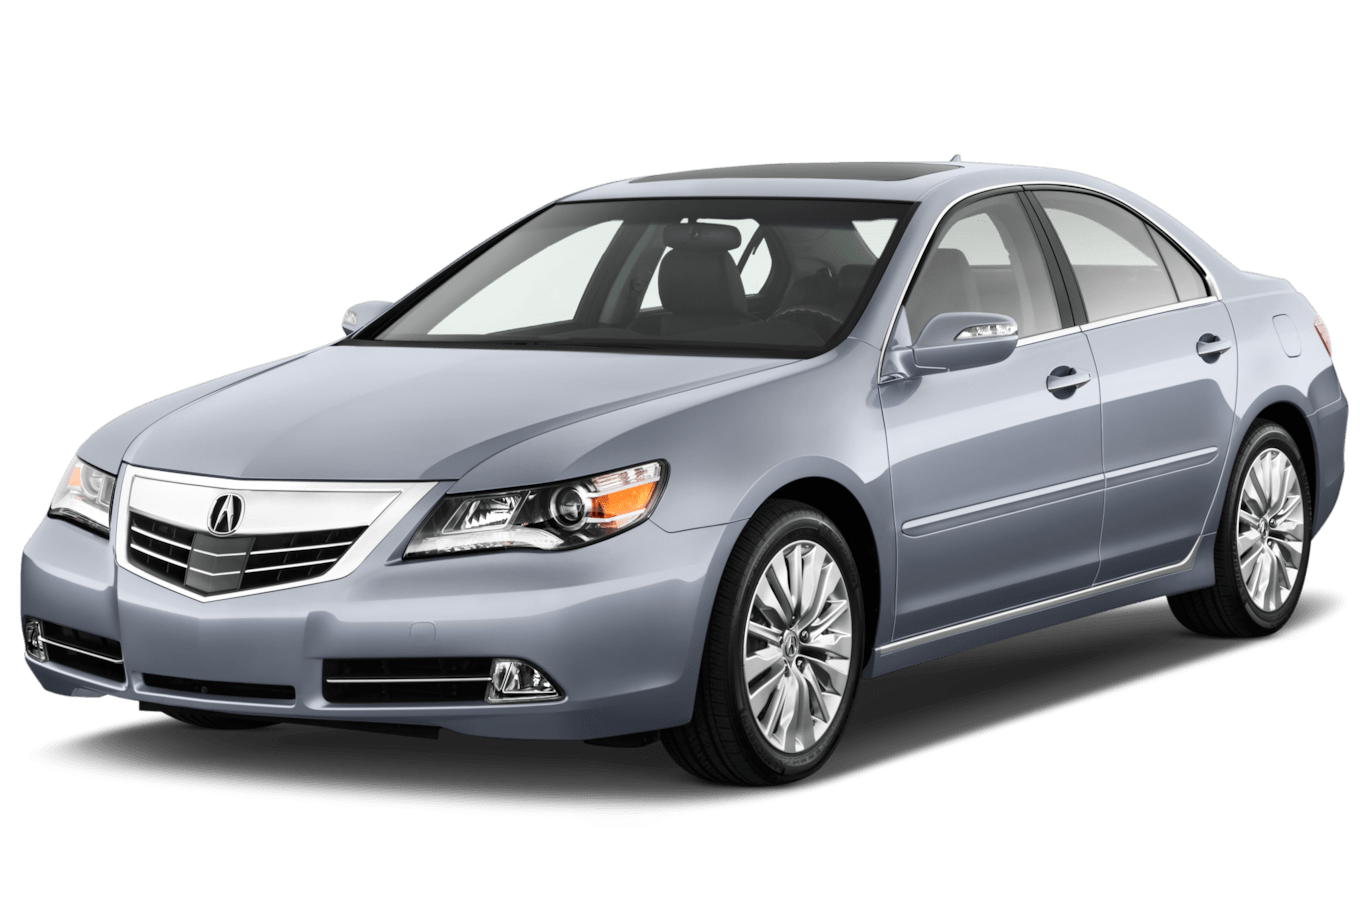 2000 Lexus LS400 Reviews and Rating